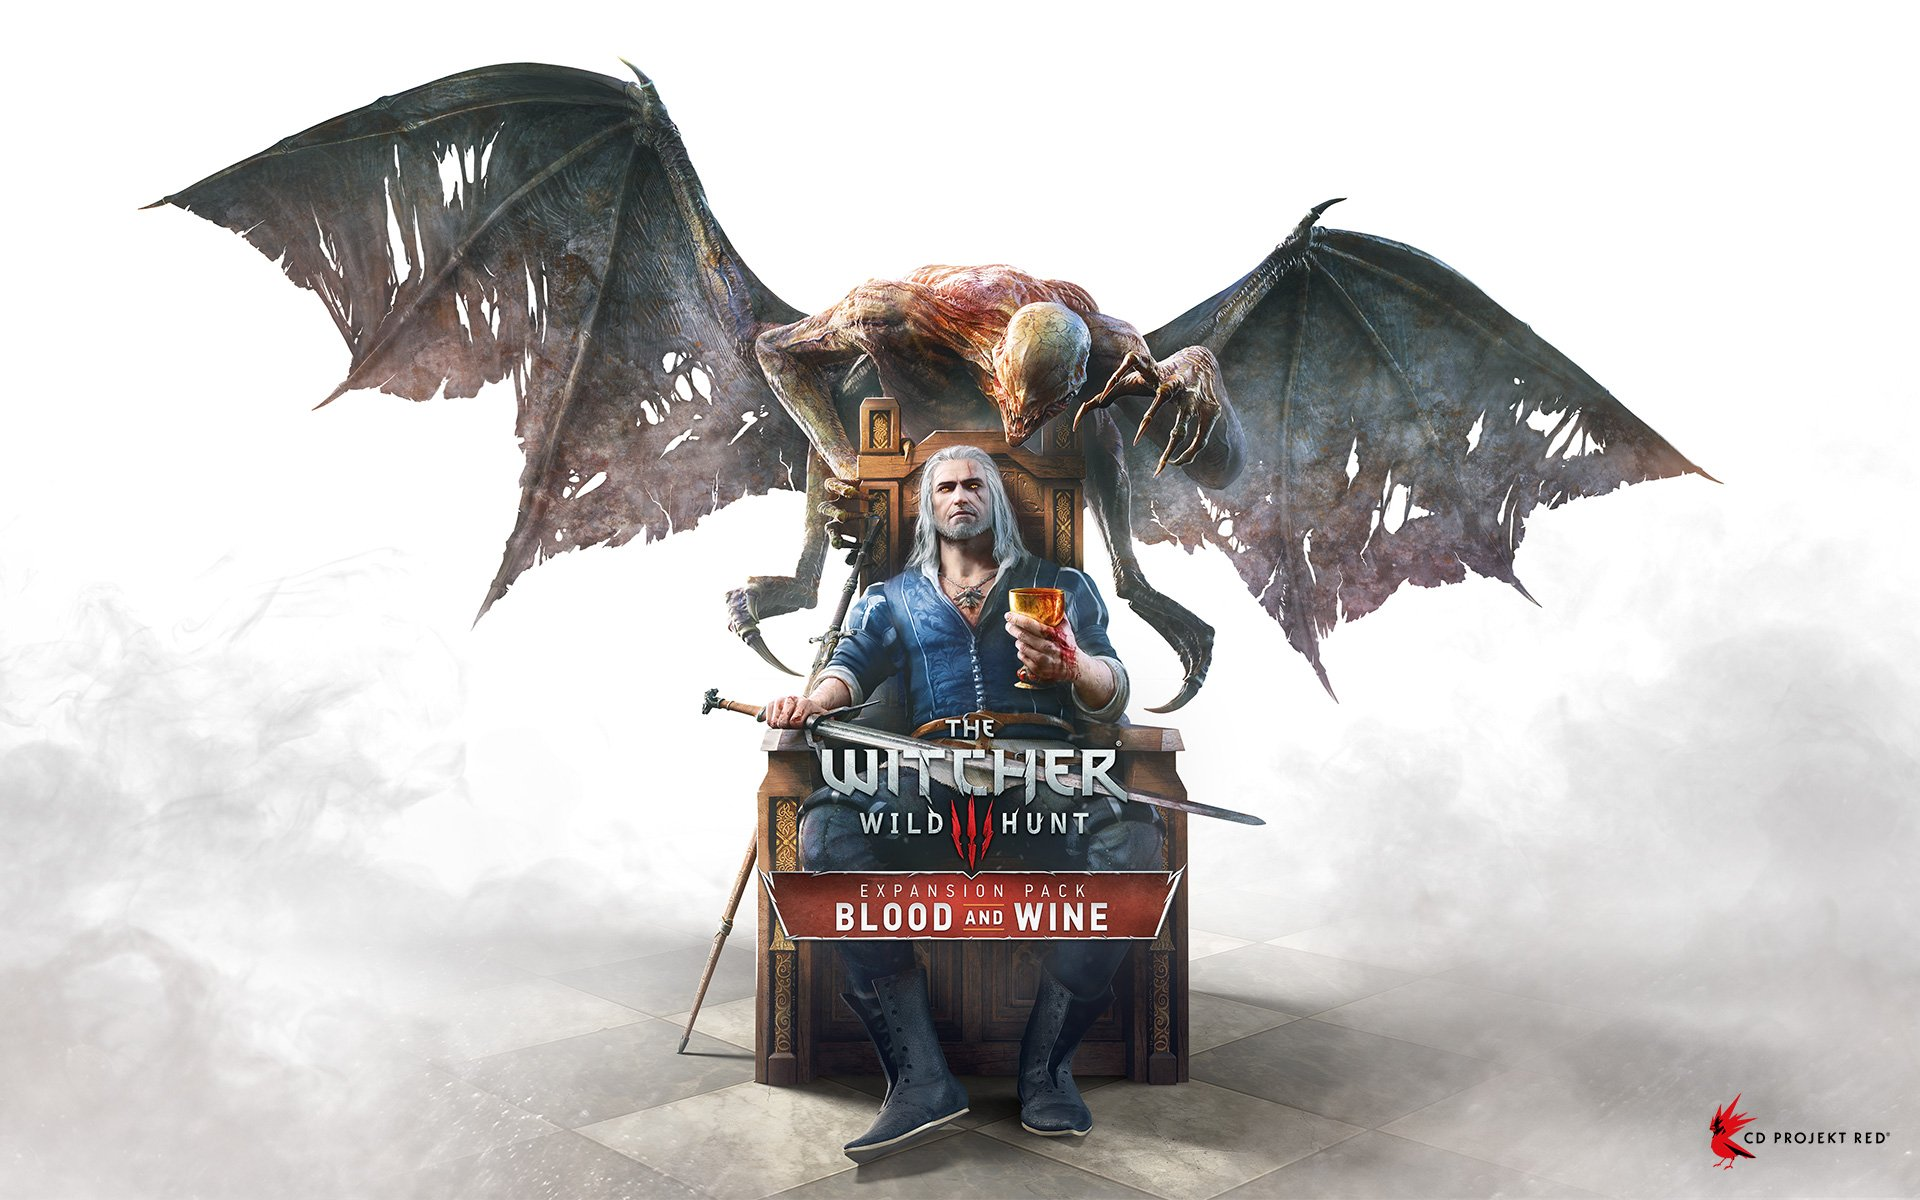 The Witcher Wild Hunt Blood and Wine wallpaper